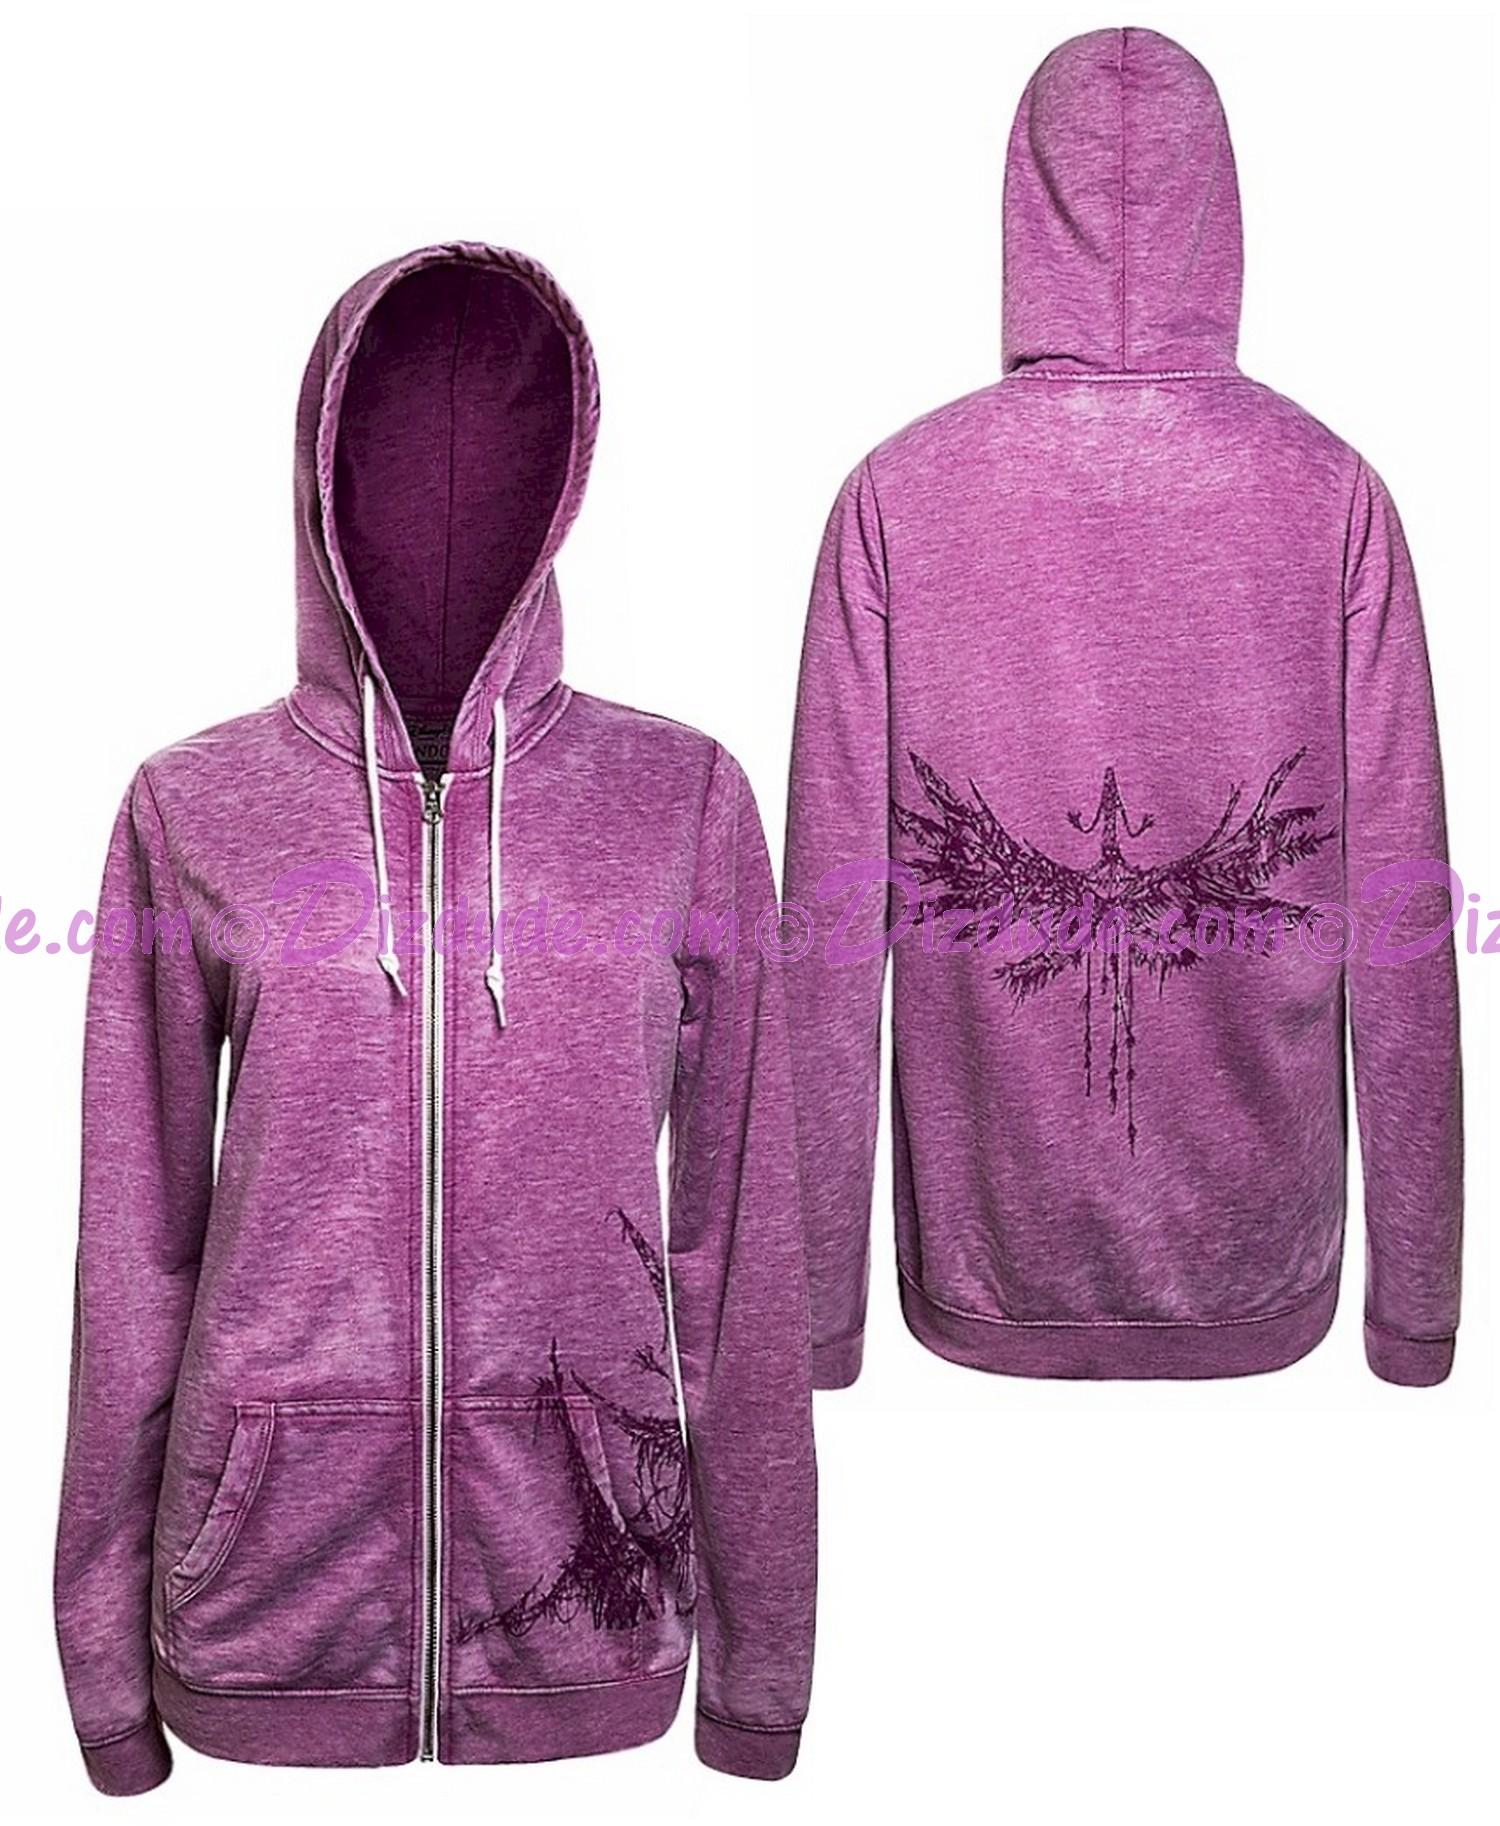 1b73699a4 (sold out) Avatar Banshee Adult Zip Hoodie - Disney Pandora – The World of